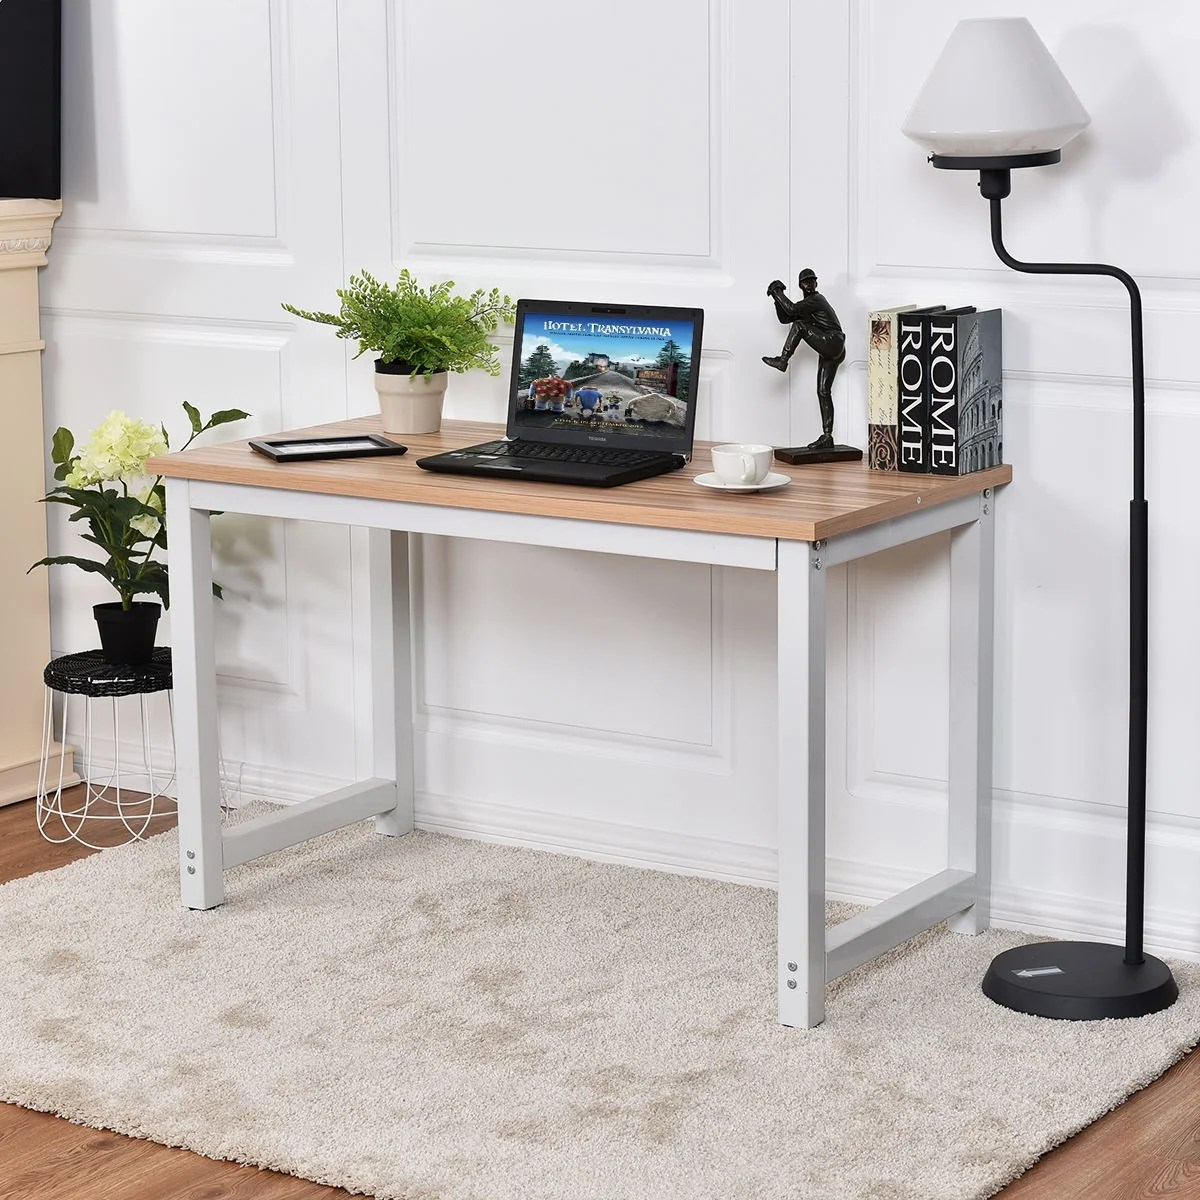 Workstation Furniture Costway Wood Computer Desk Pc Laptop Table Study Workstation Home Office Furniture